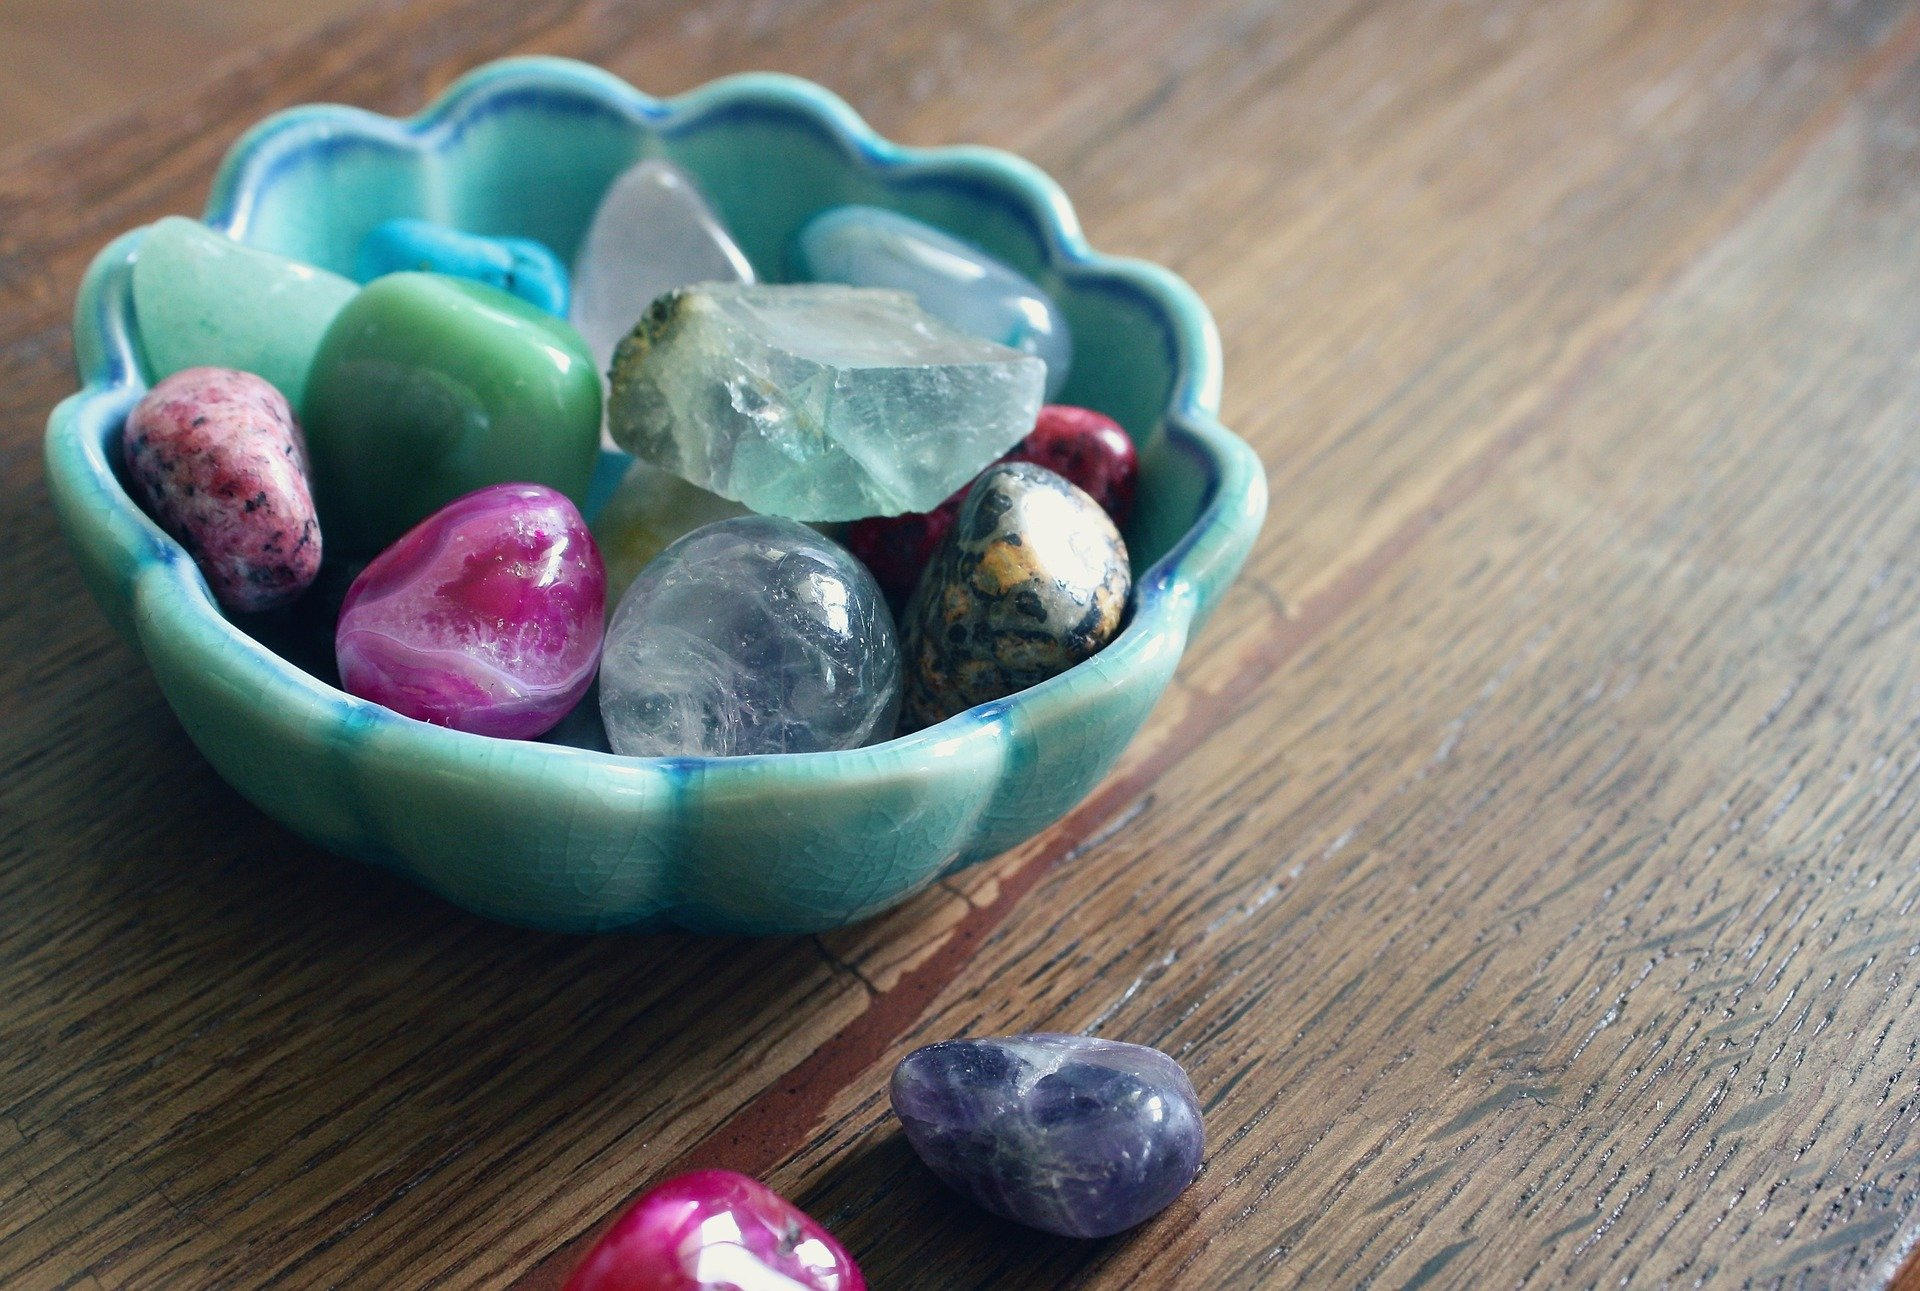 How To Increase Your Energy with Healing Crystals - Stacey Chillemi - Health & Lifestyle Coach